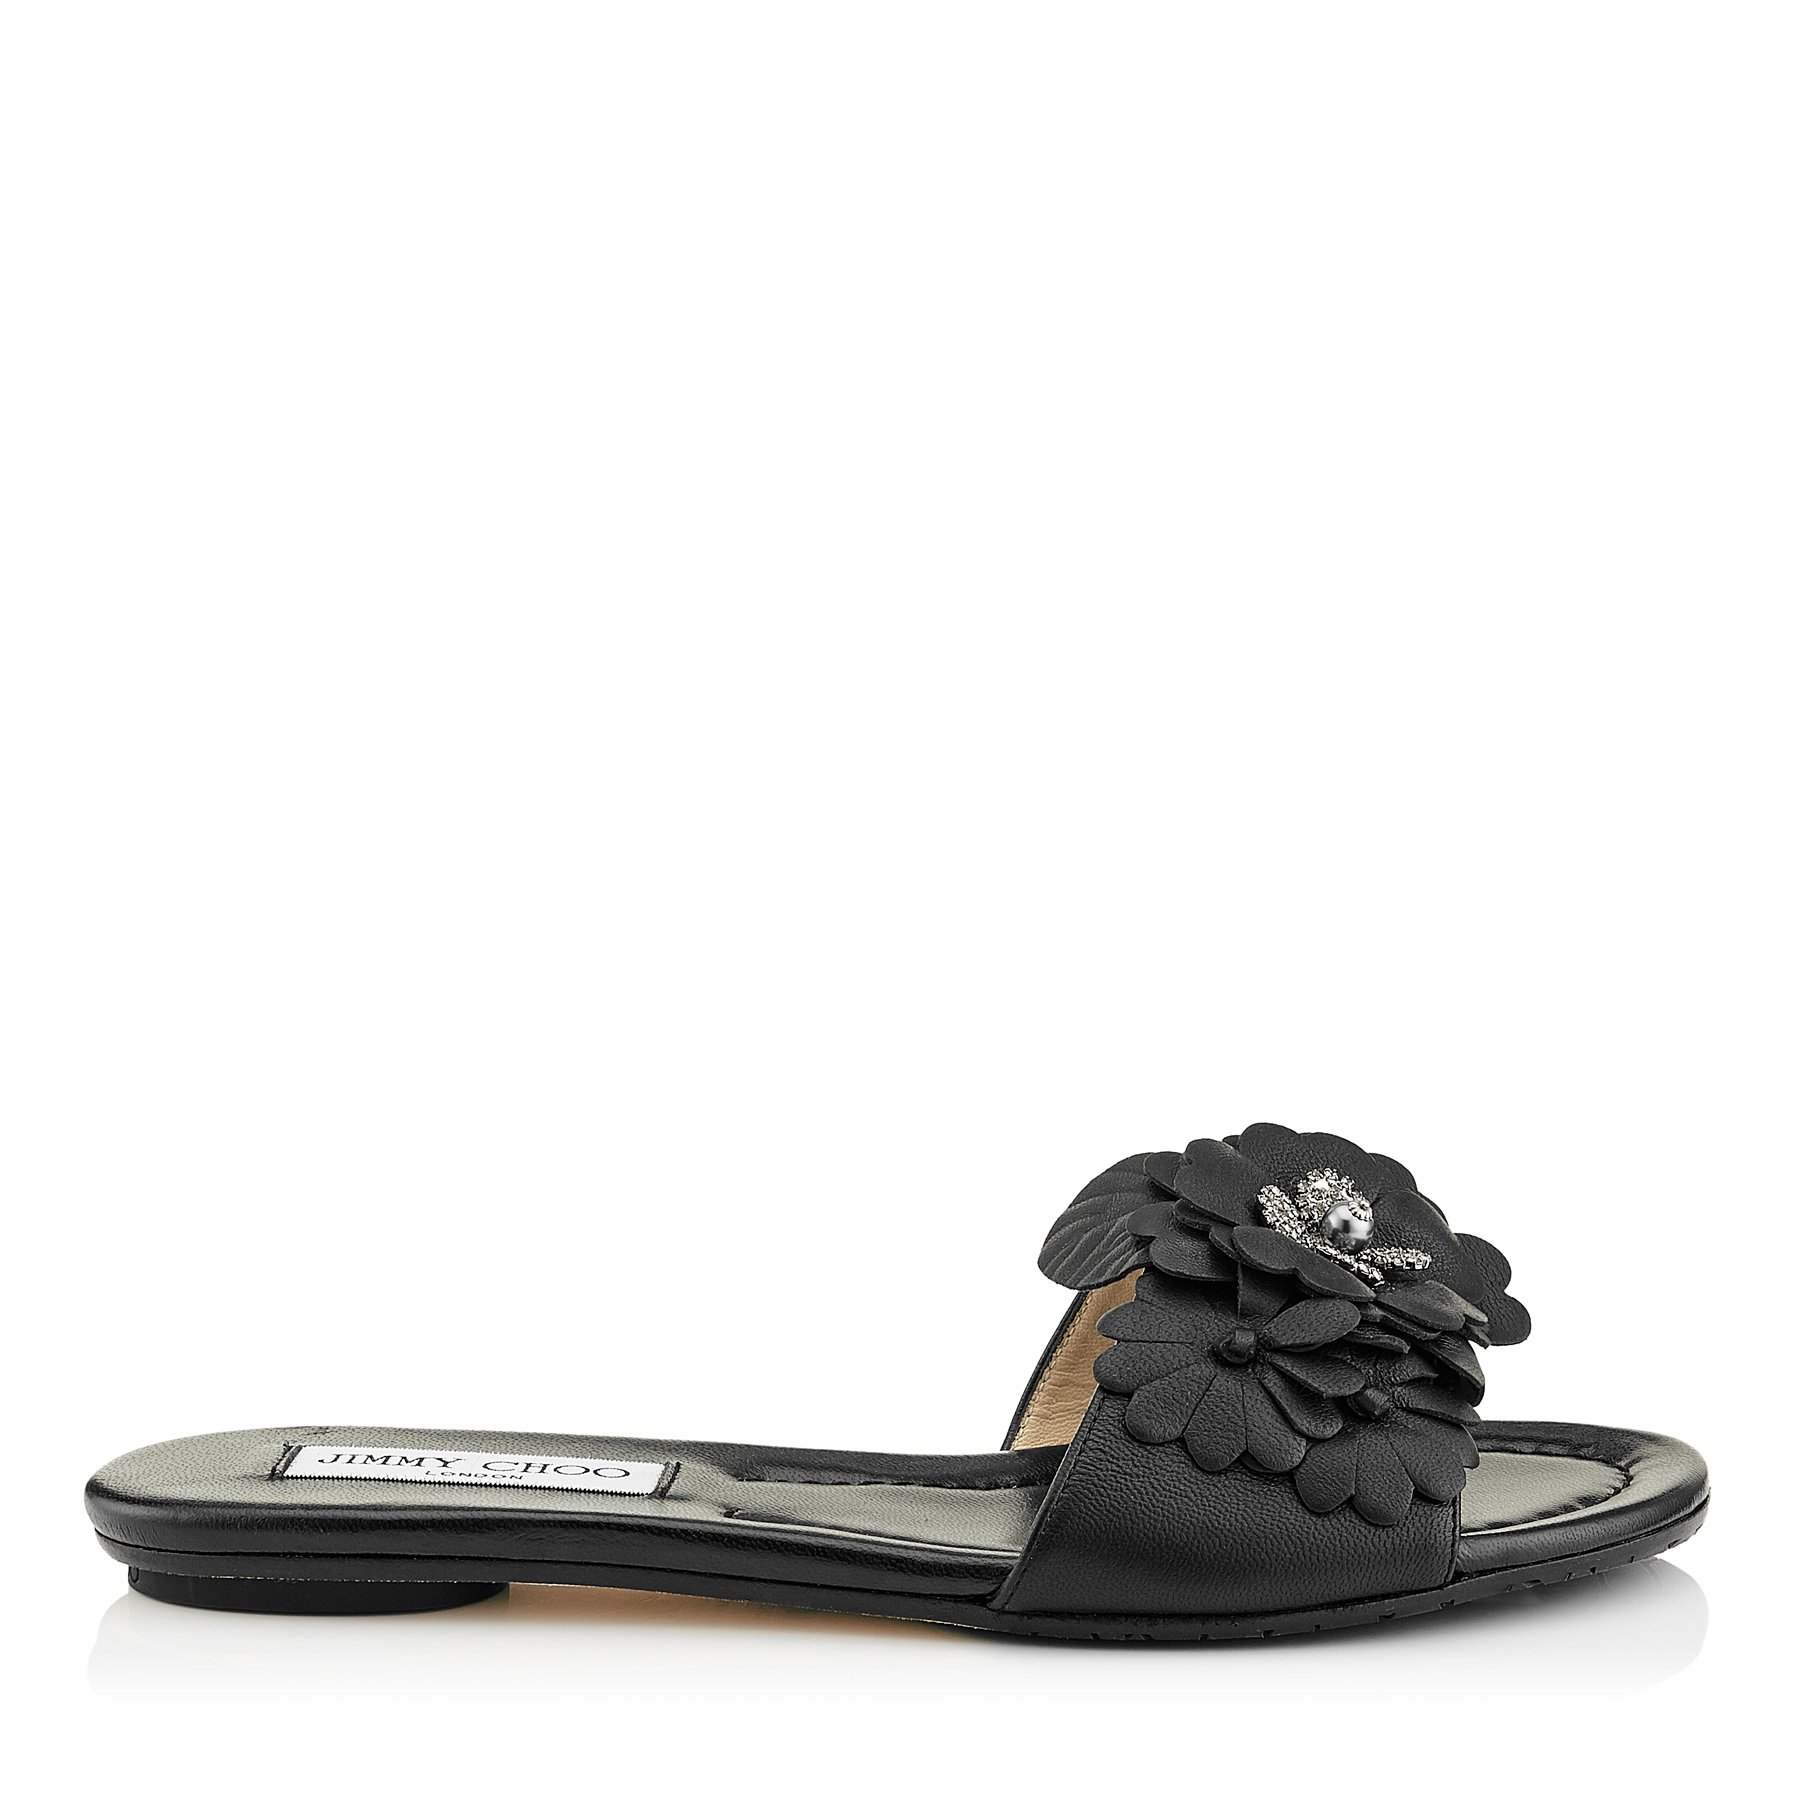 NEAVE FLAT Black Nappa Leather Slides with Floral Appliqué